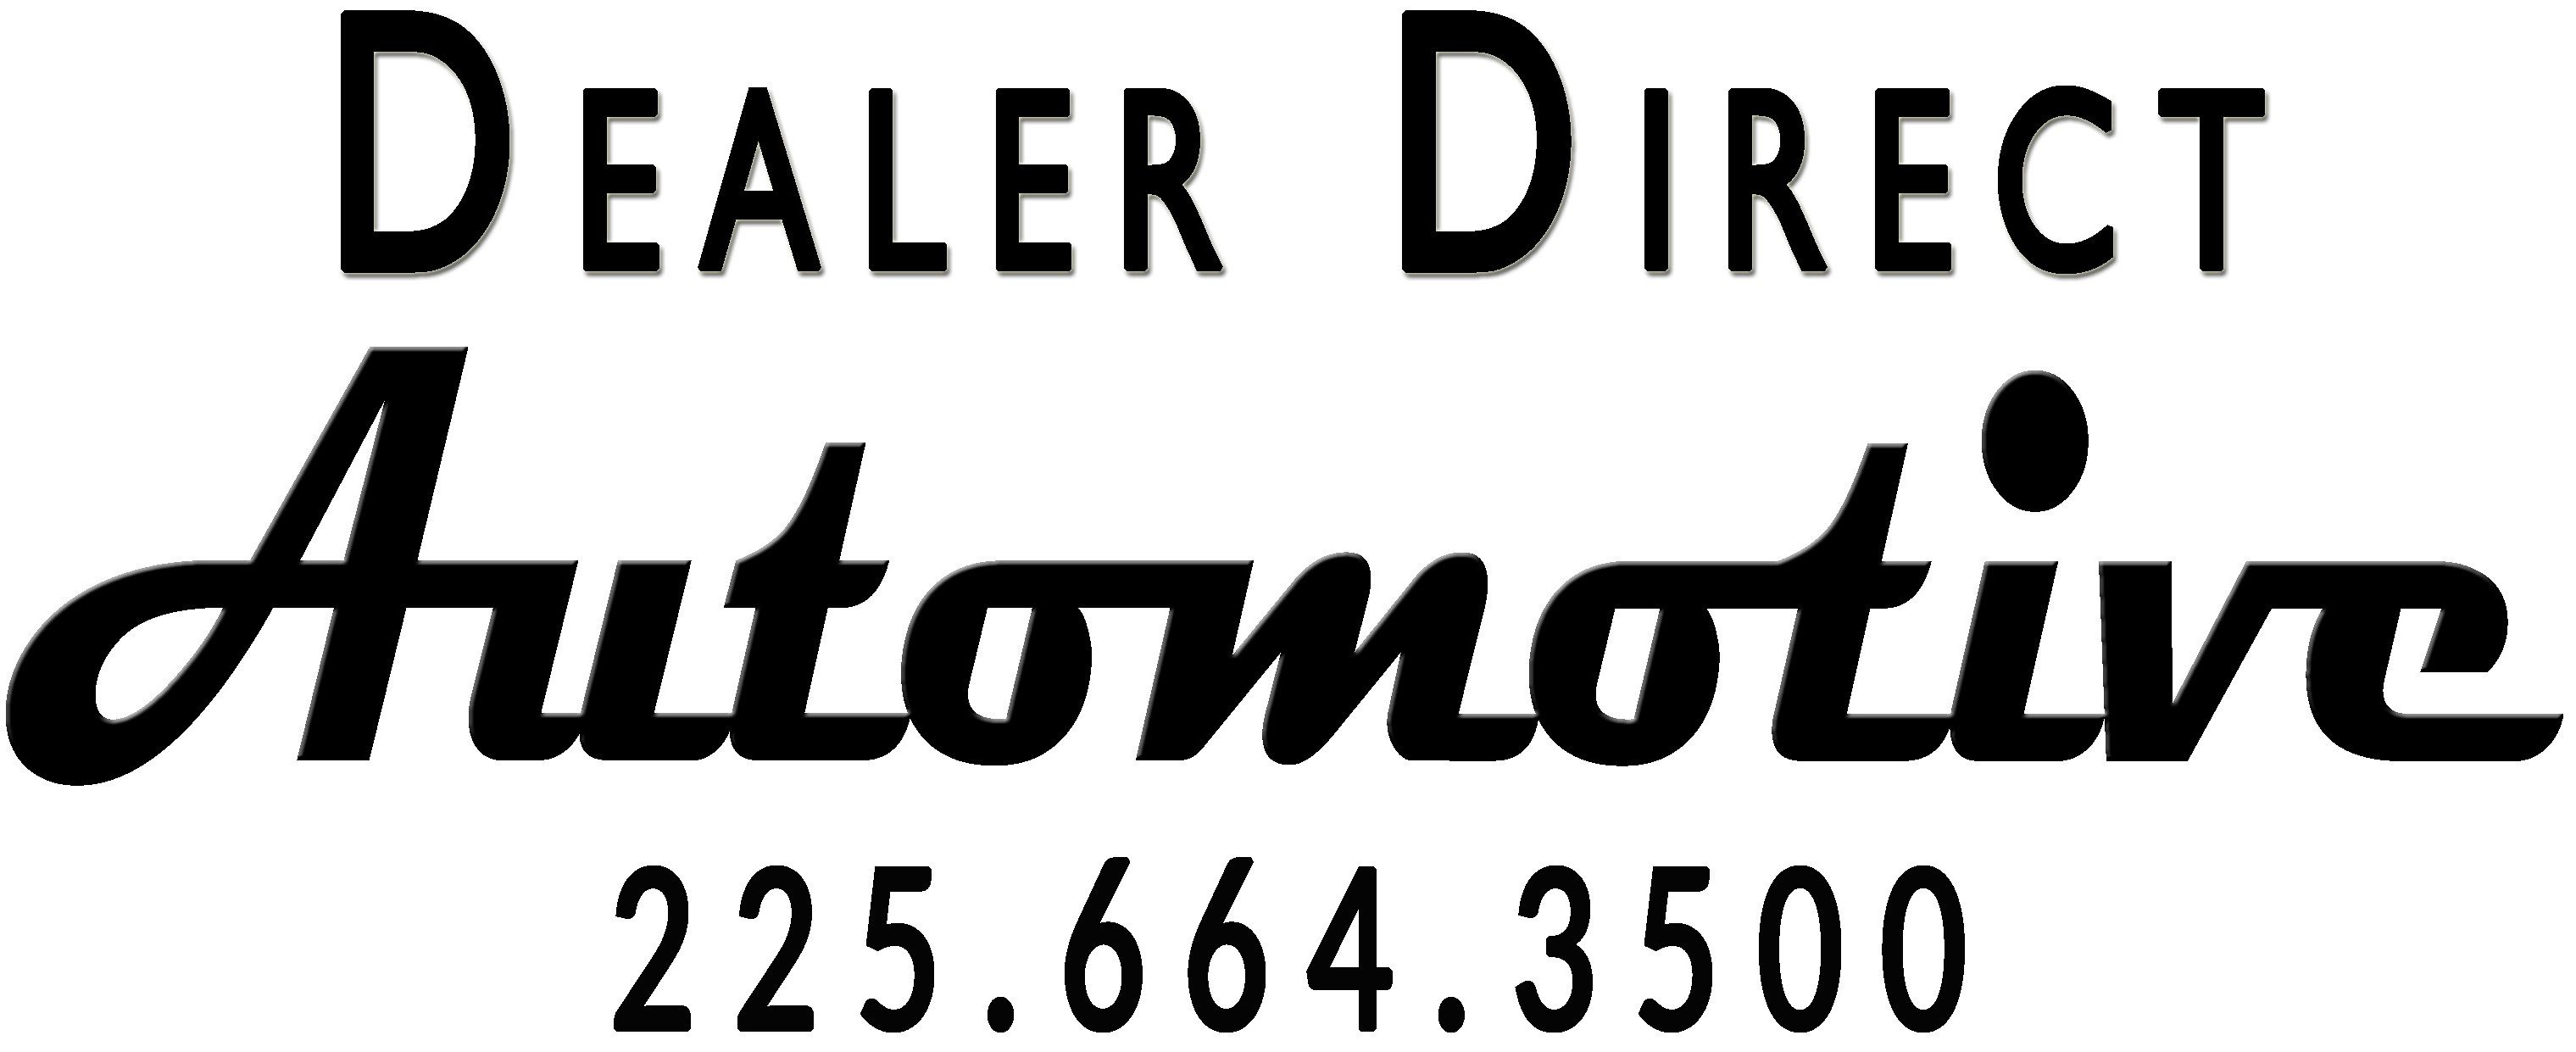 DEALER DIRECT AUTOMOTIVE